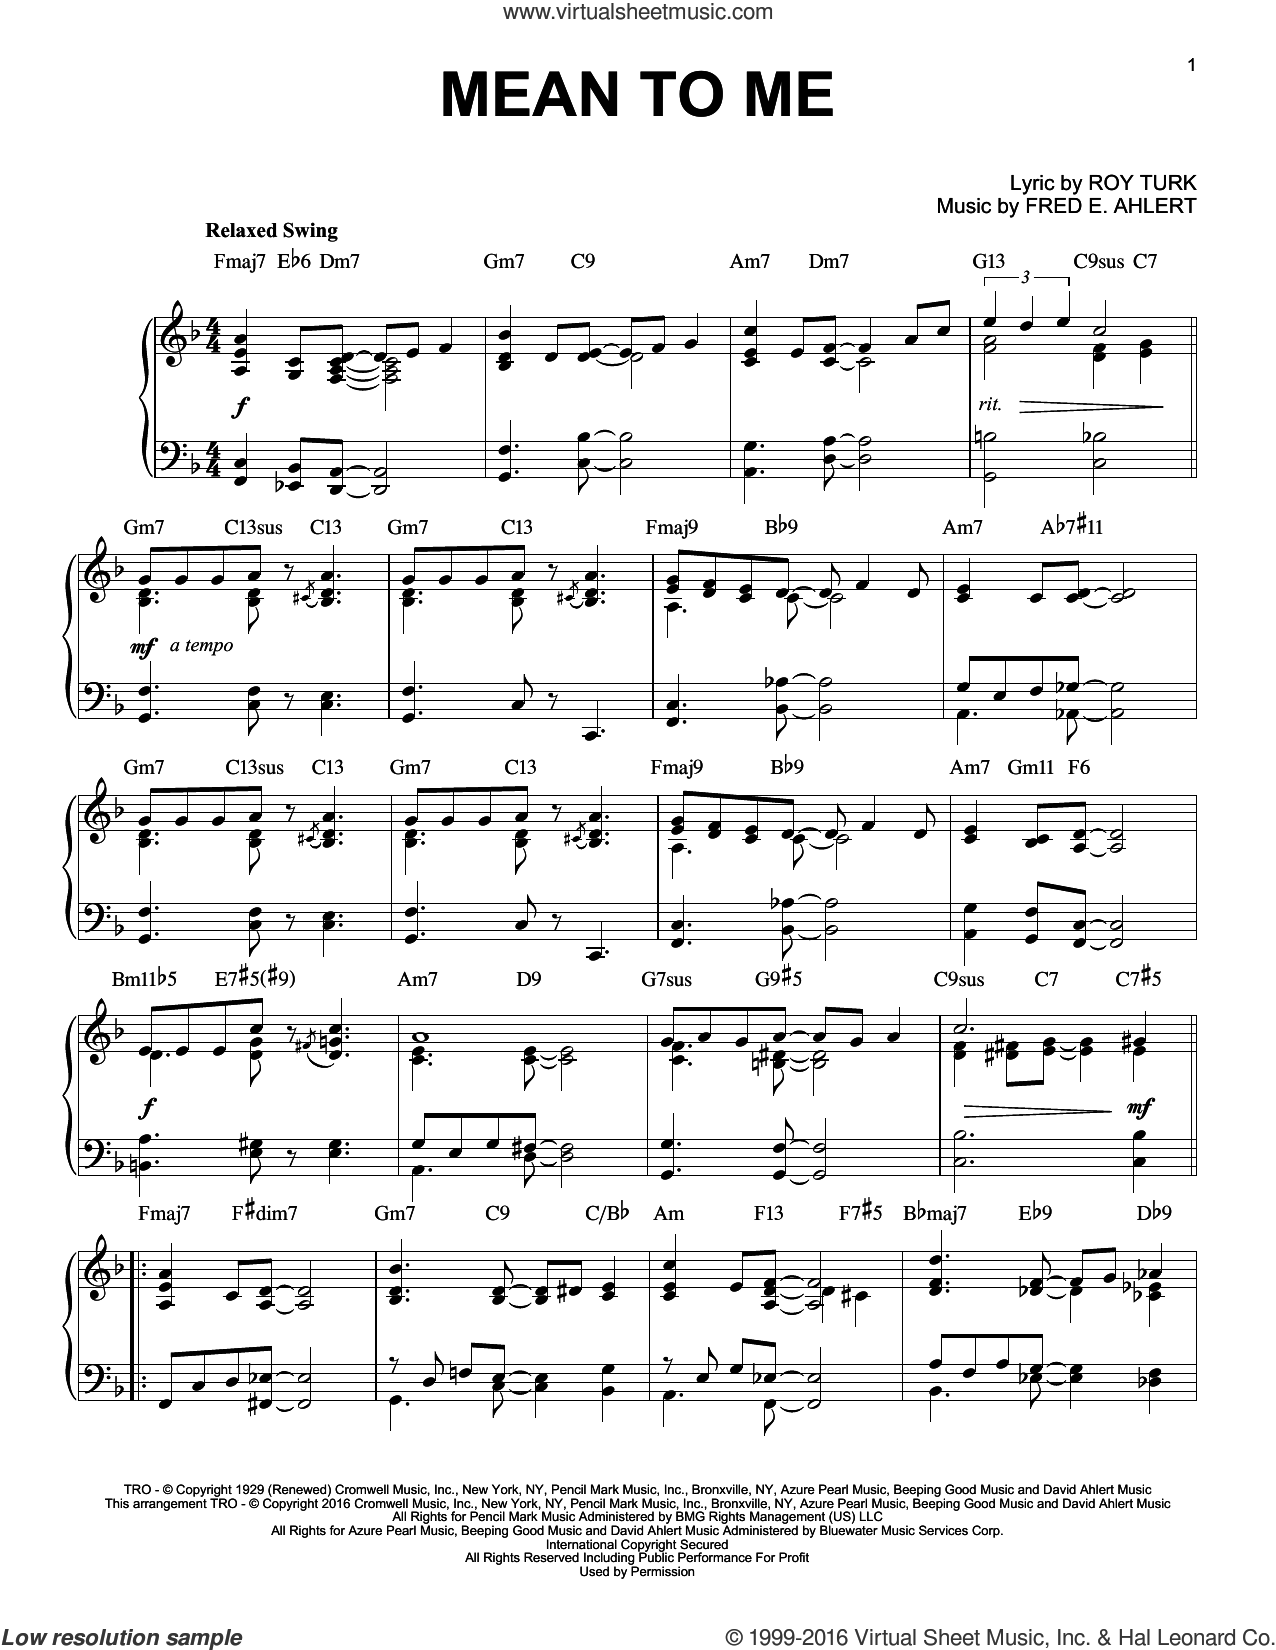 Mean To Me sheet music for piano solo by Roy Turk and Fred Ahlert, intermediate skill level